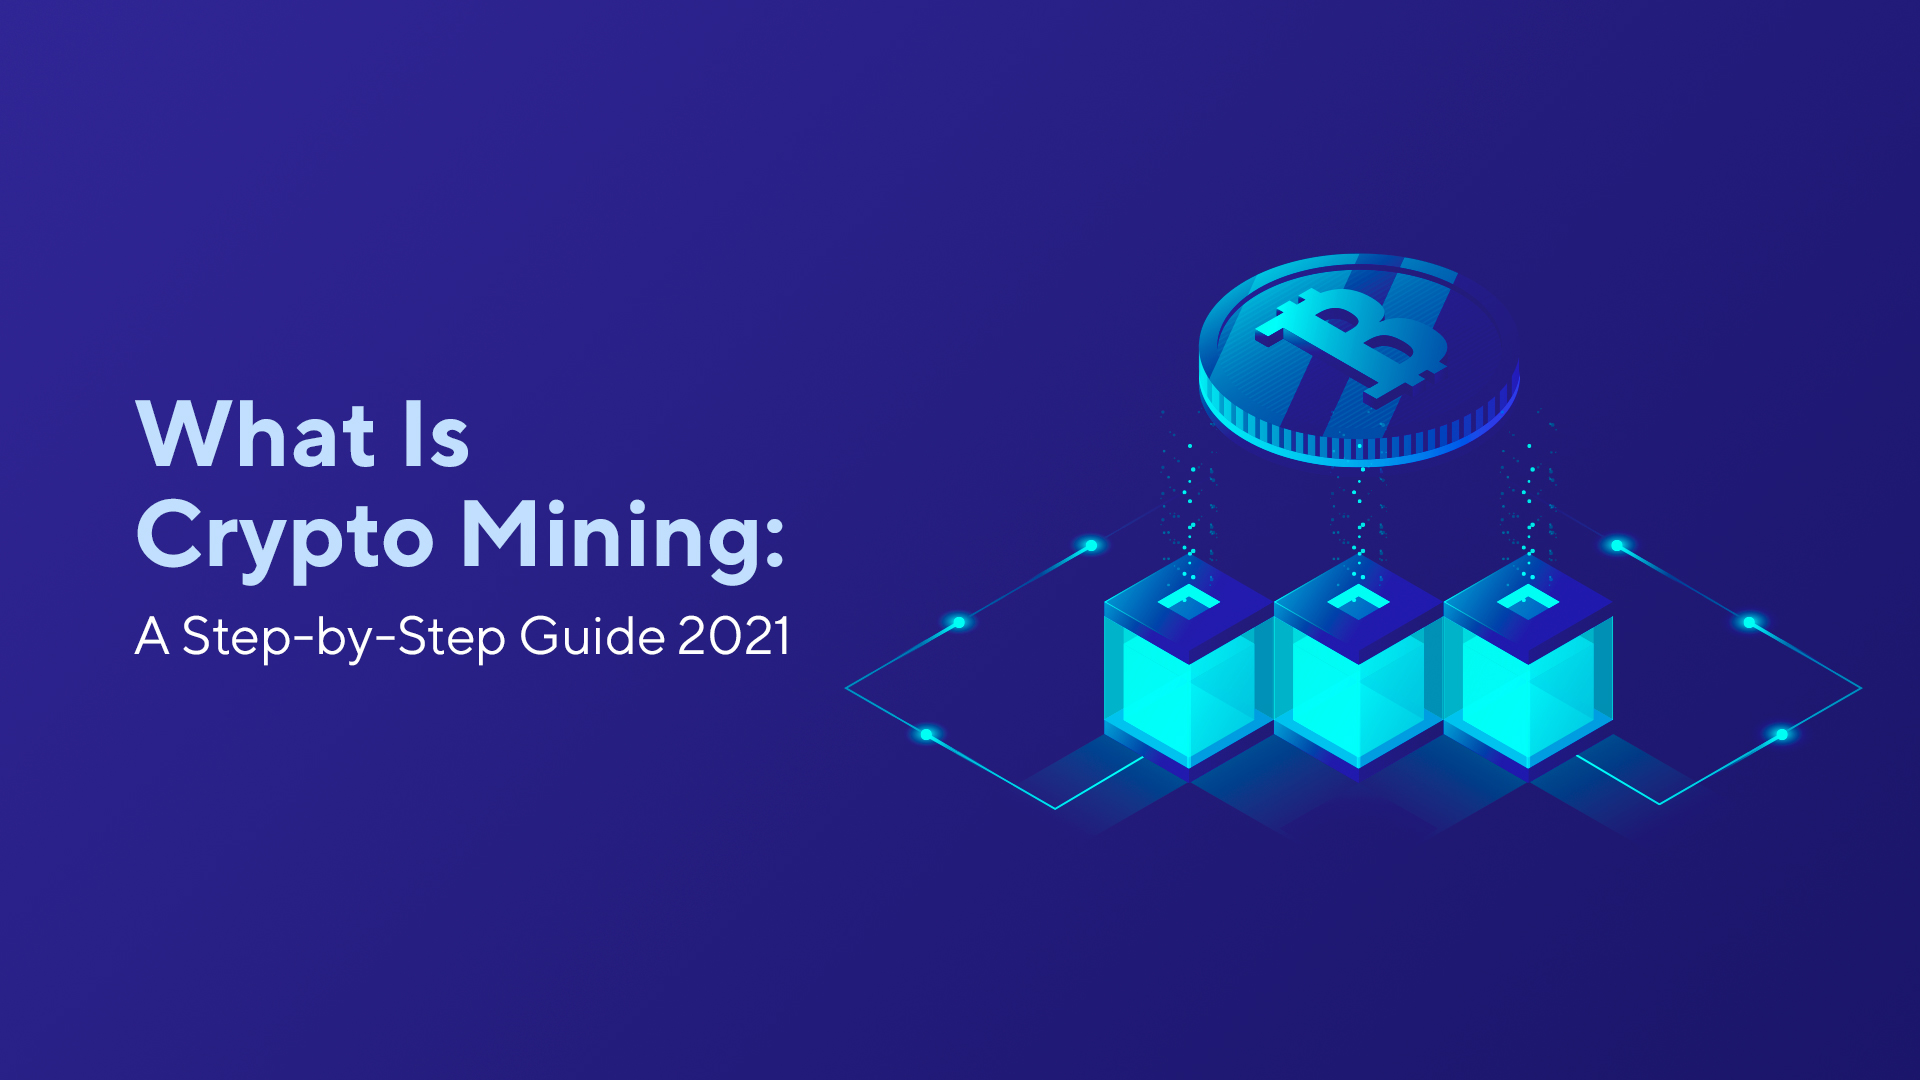 What Is Cryptocurrency Mining: A Step-by-Step Guide 2021